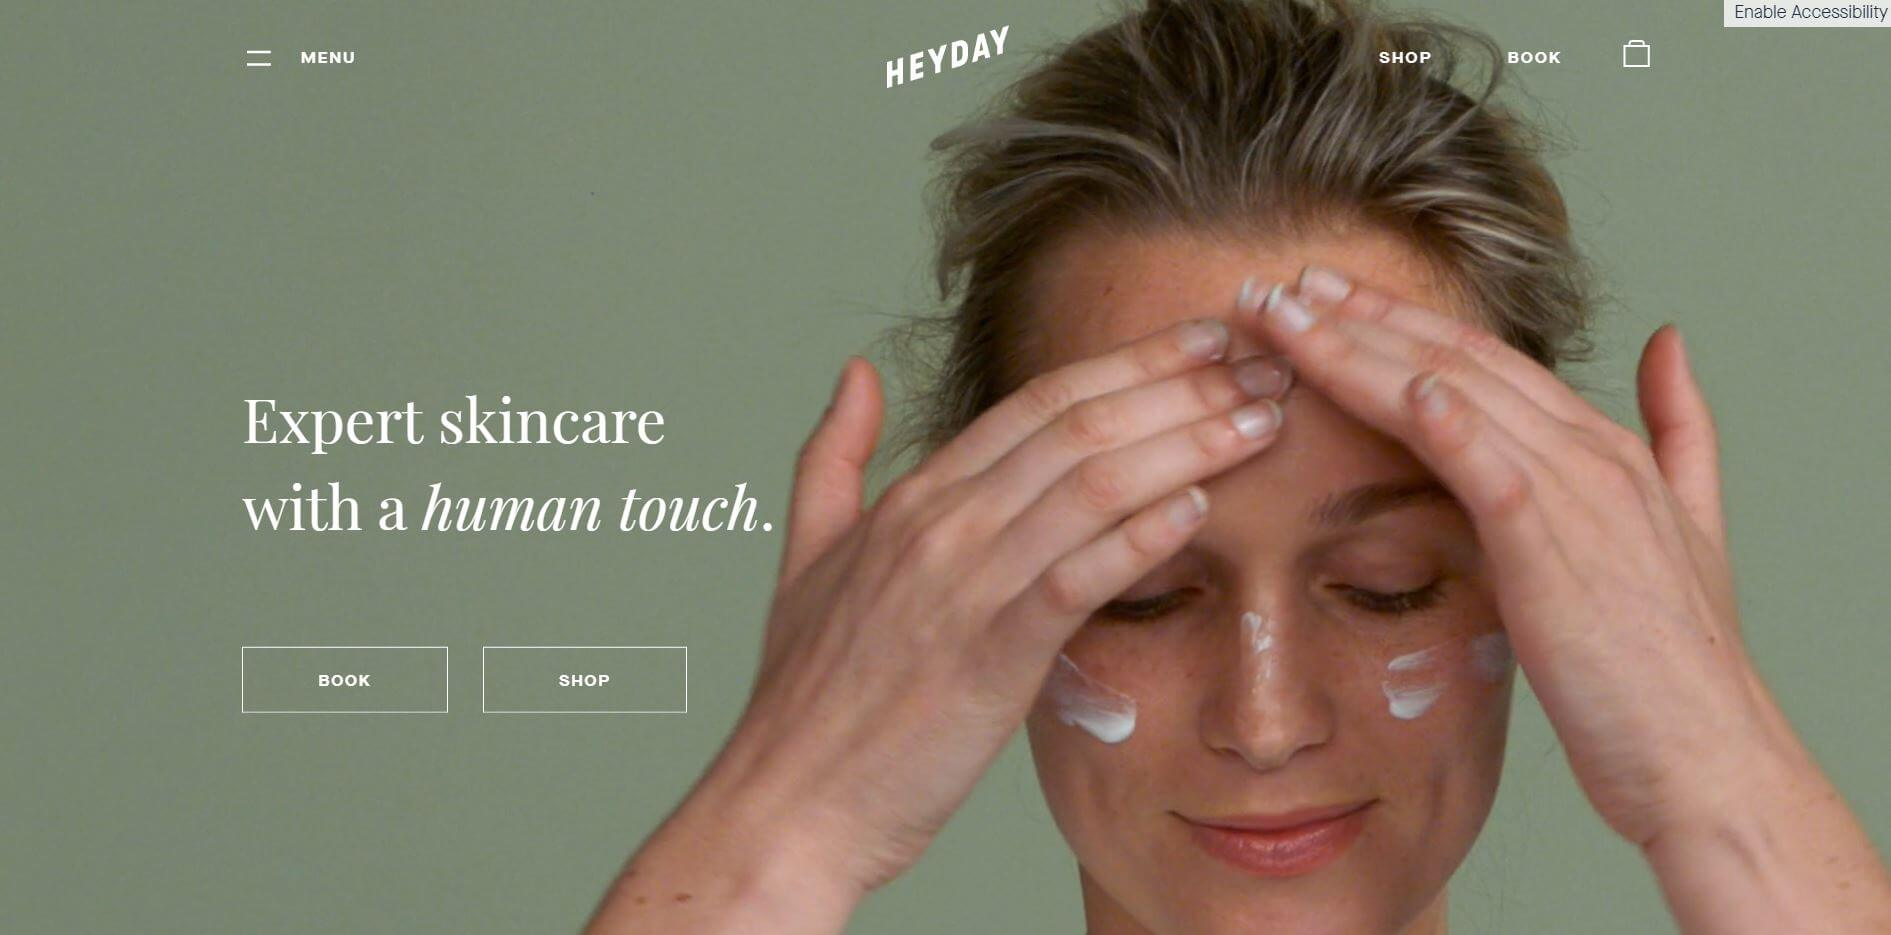 HeyDay Skin Care Ecommerce Website Design Example